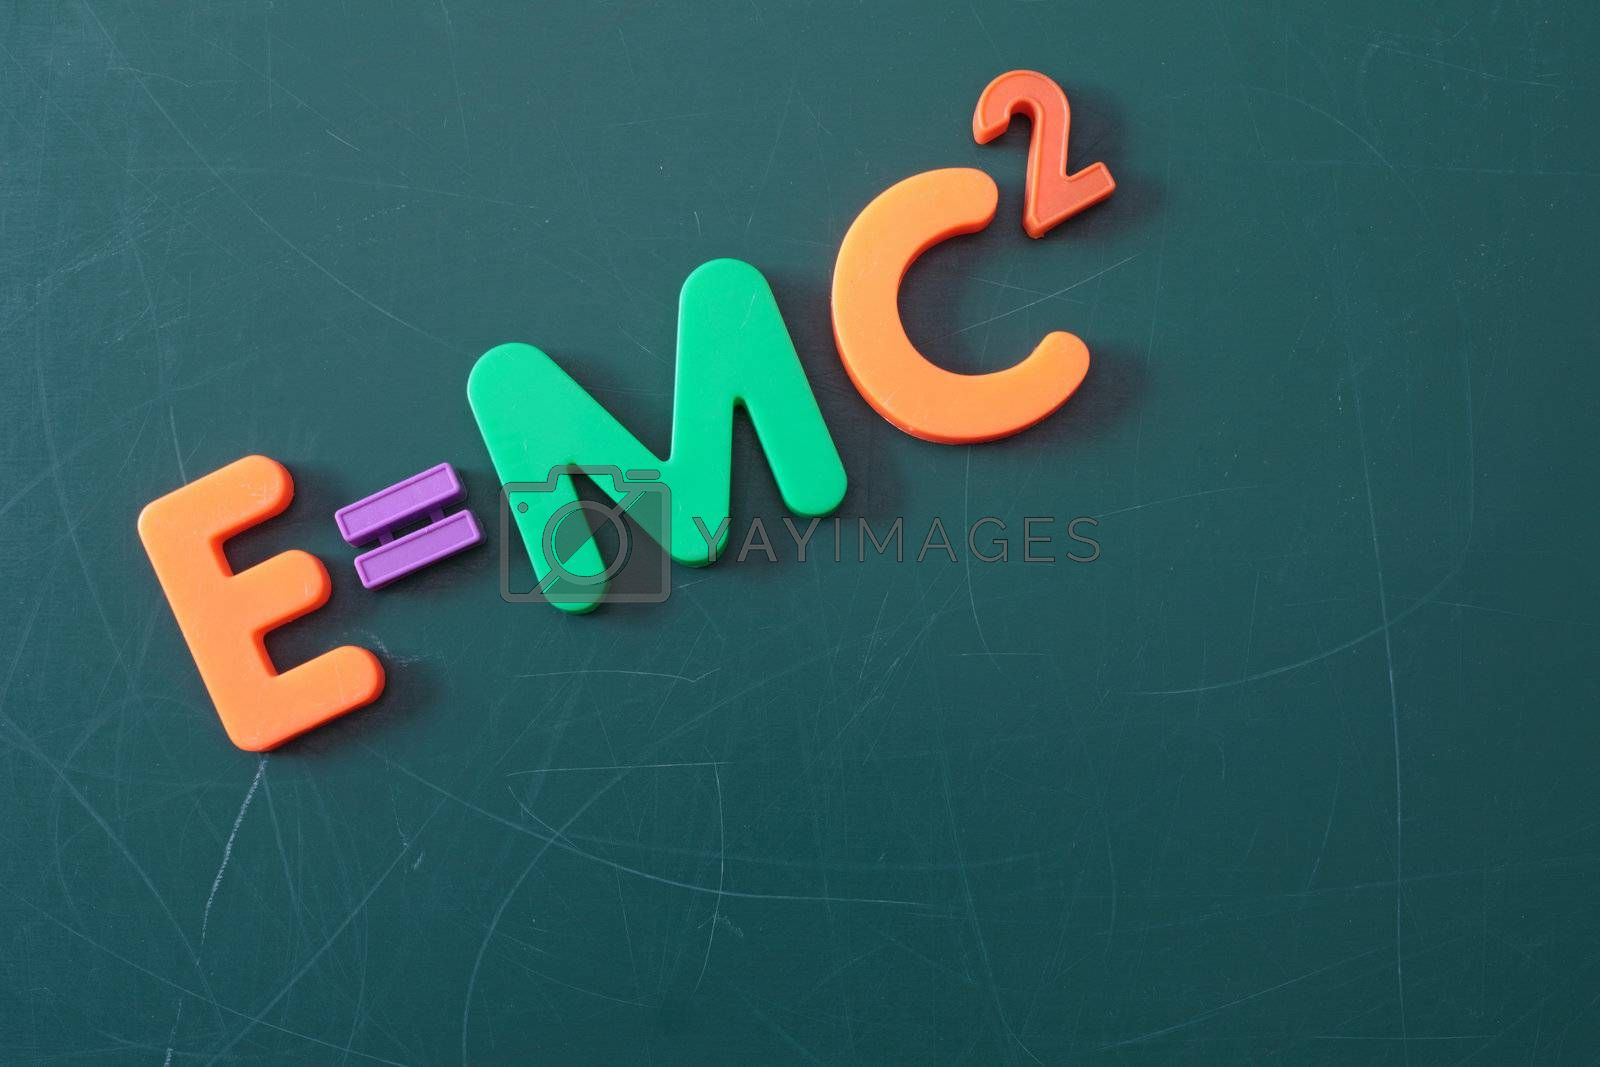 The famous theory of relativity shown on a chalkboard symbolizes education.